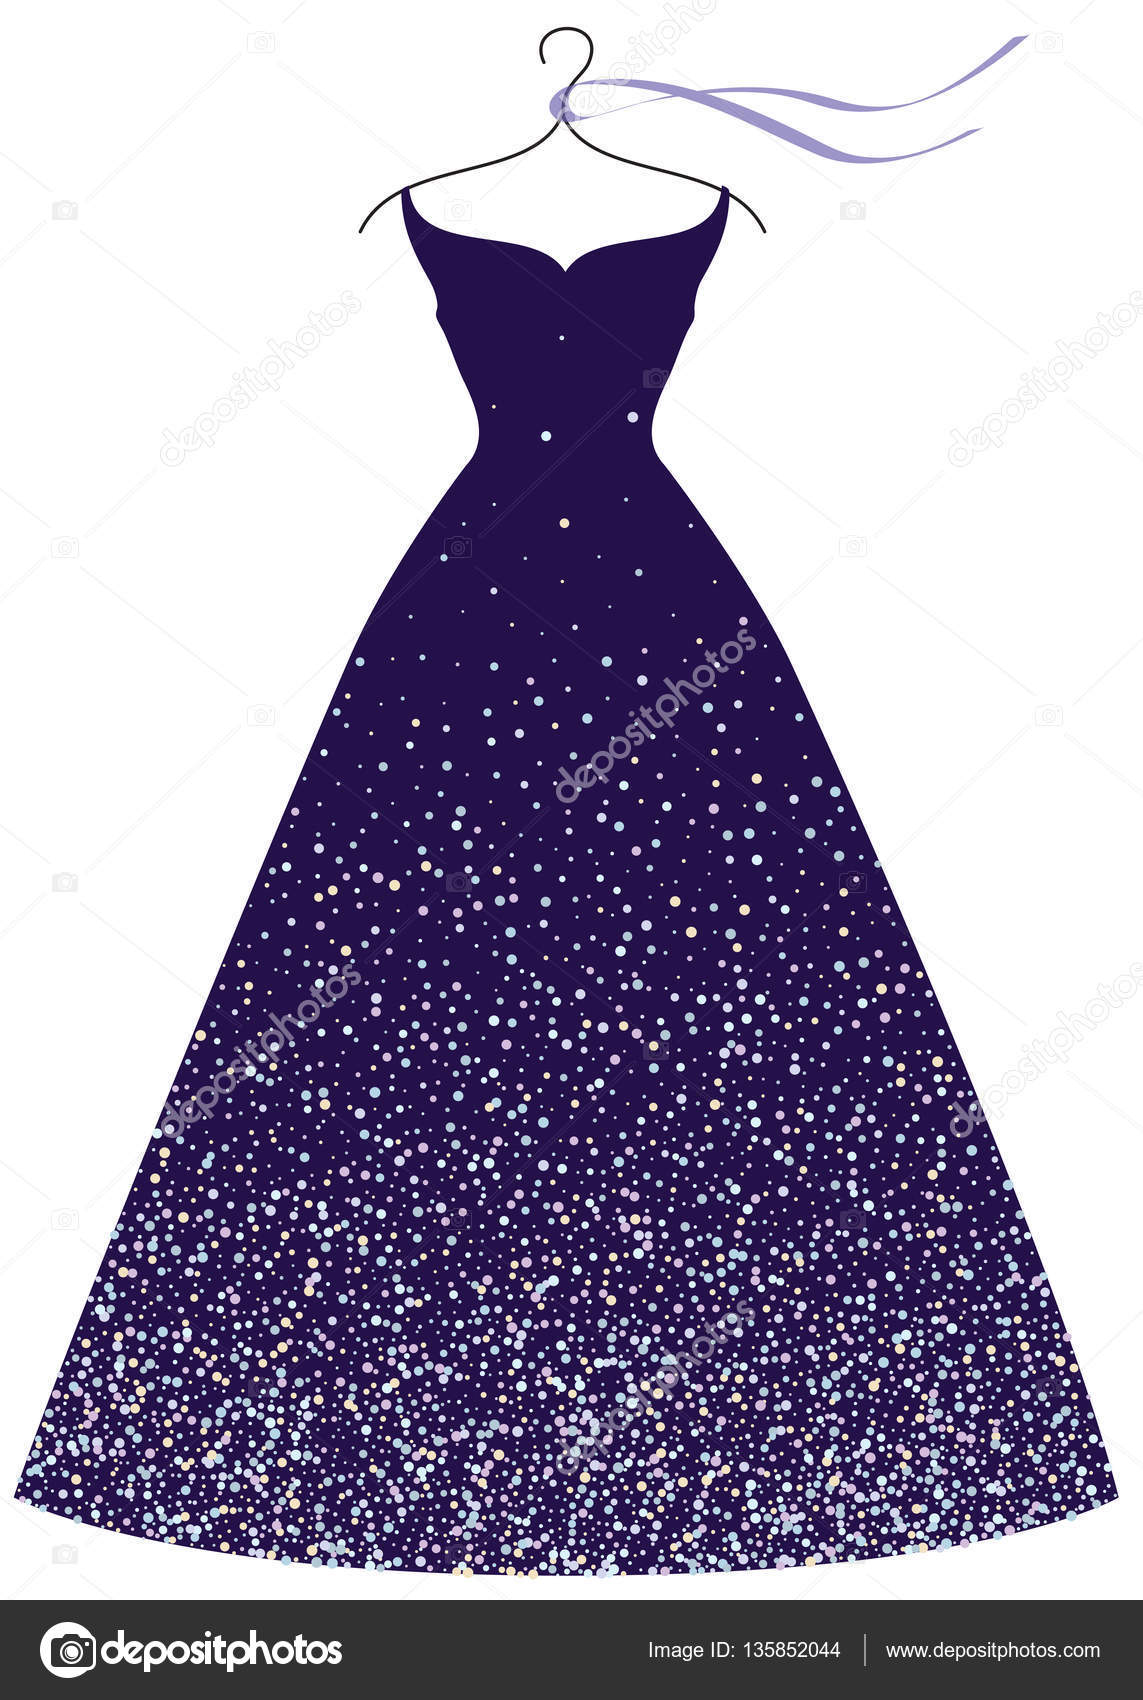 Evening Party Dress Fashion Illustration Vector Image By C Maddyz Vector Stock 135852044